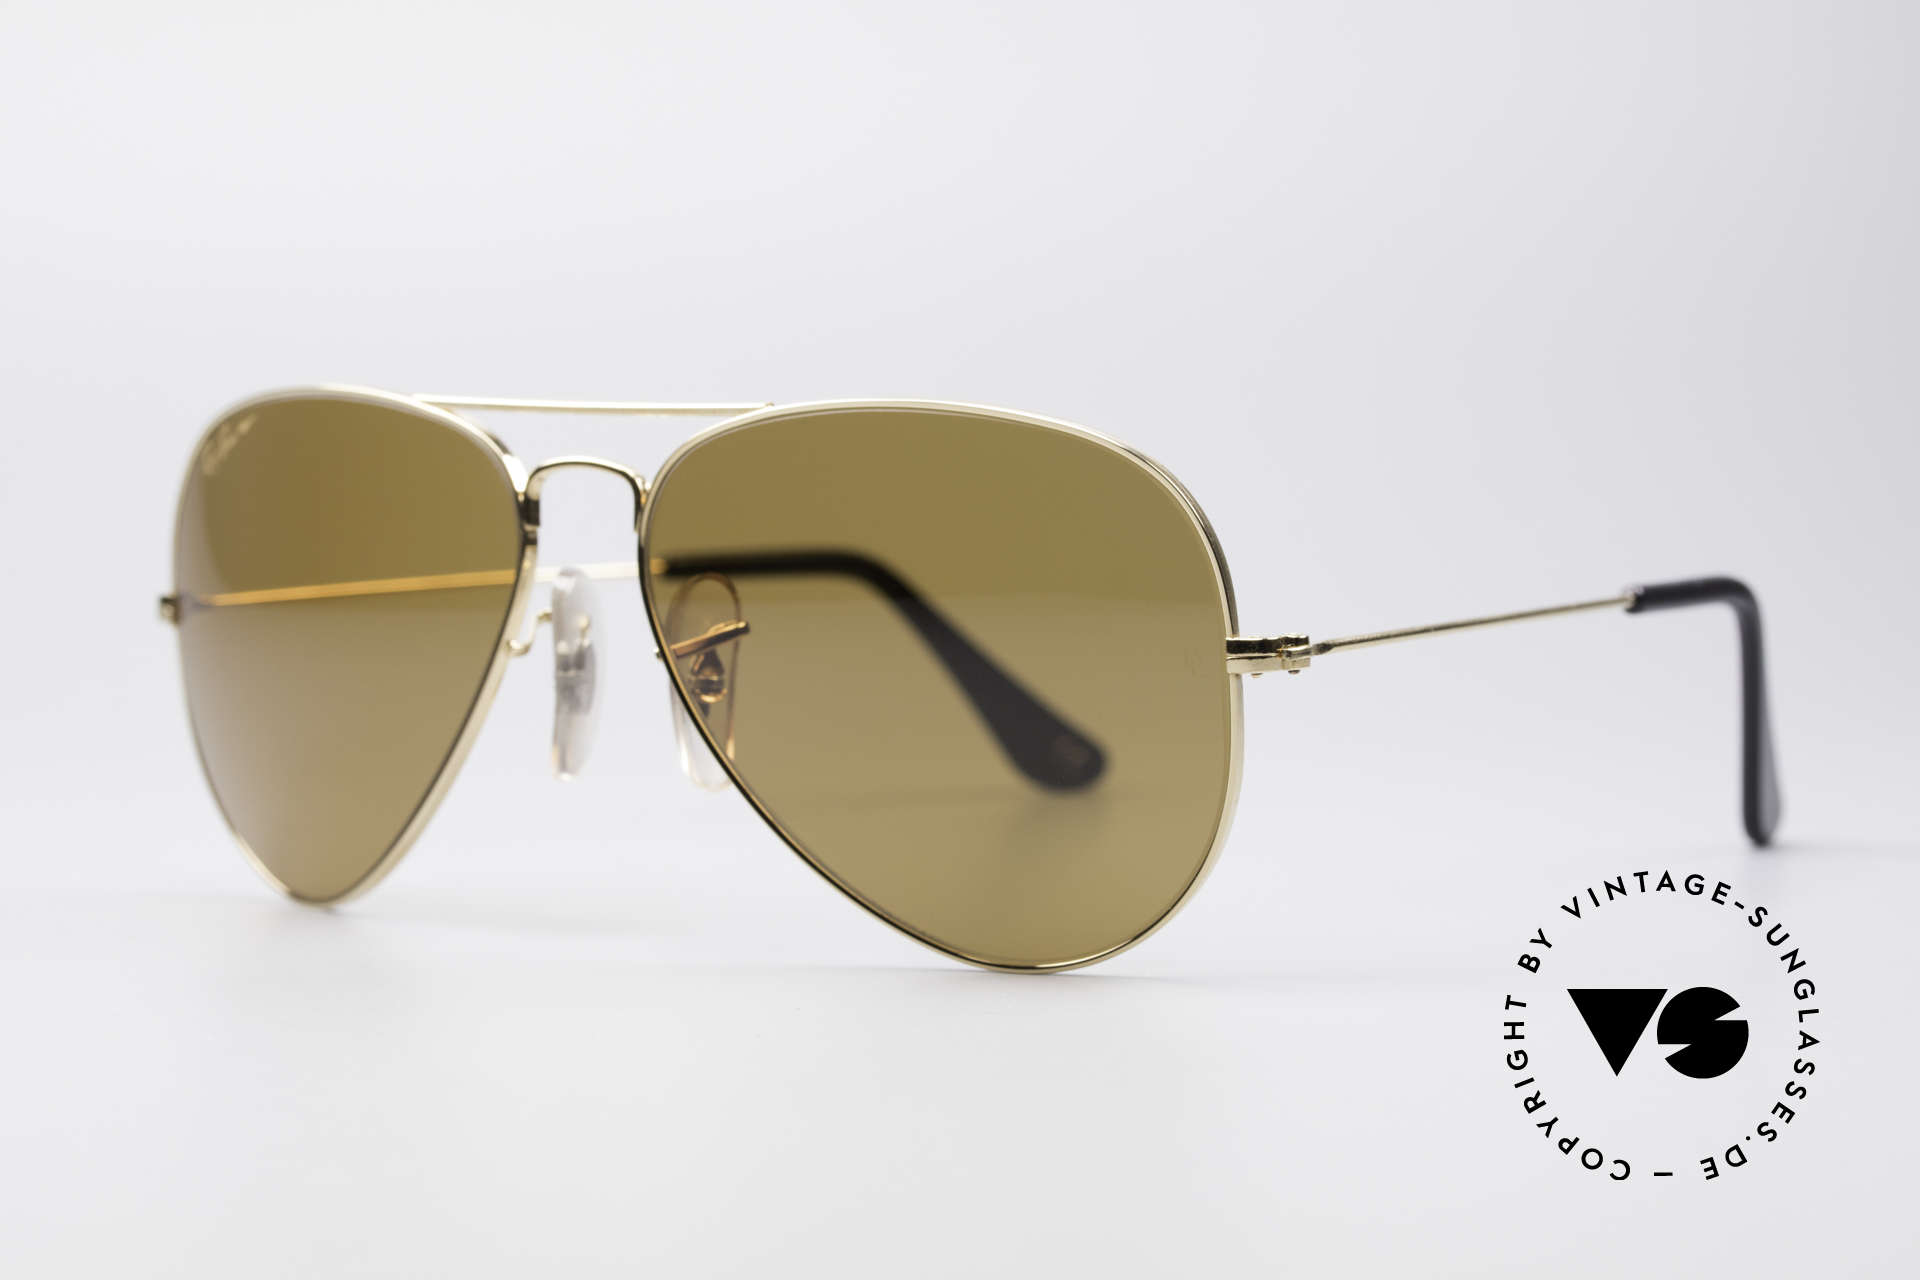 Ray Ban Large Metal Driving Chromax, rare and costly special edition ''Driving Chromax', Made for Men and Women